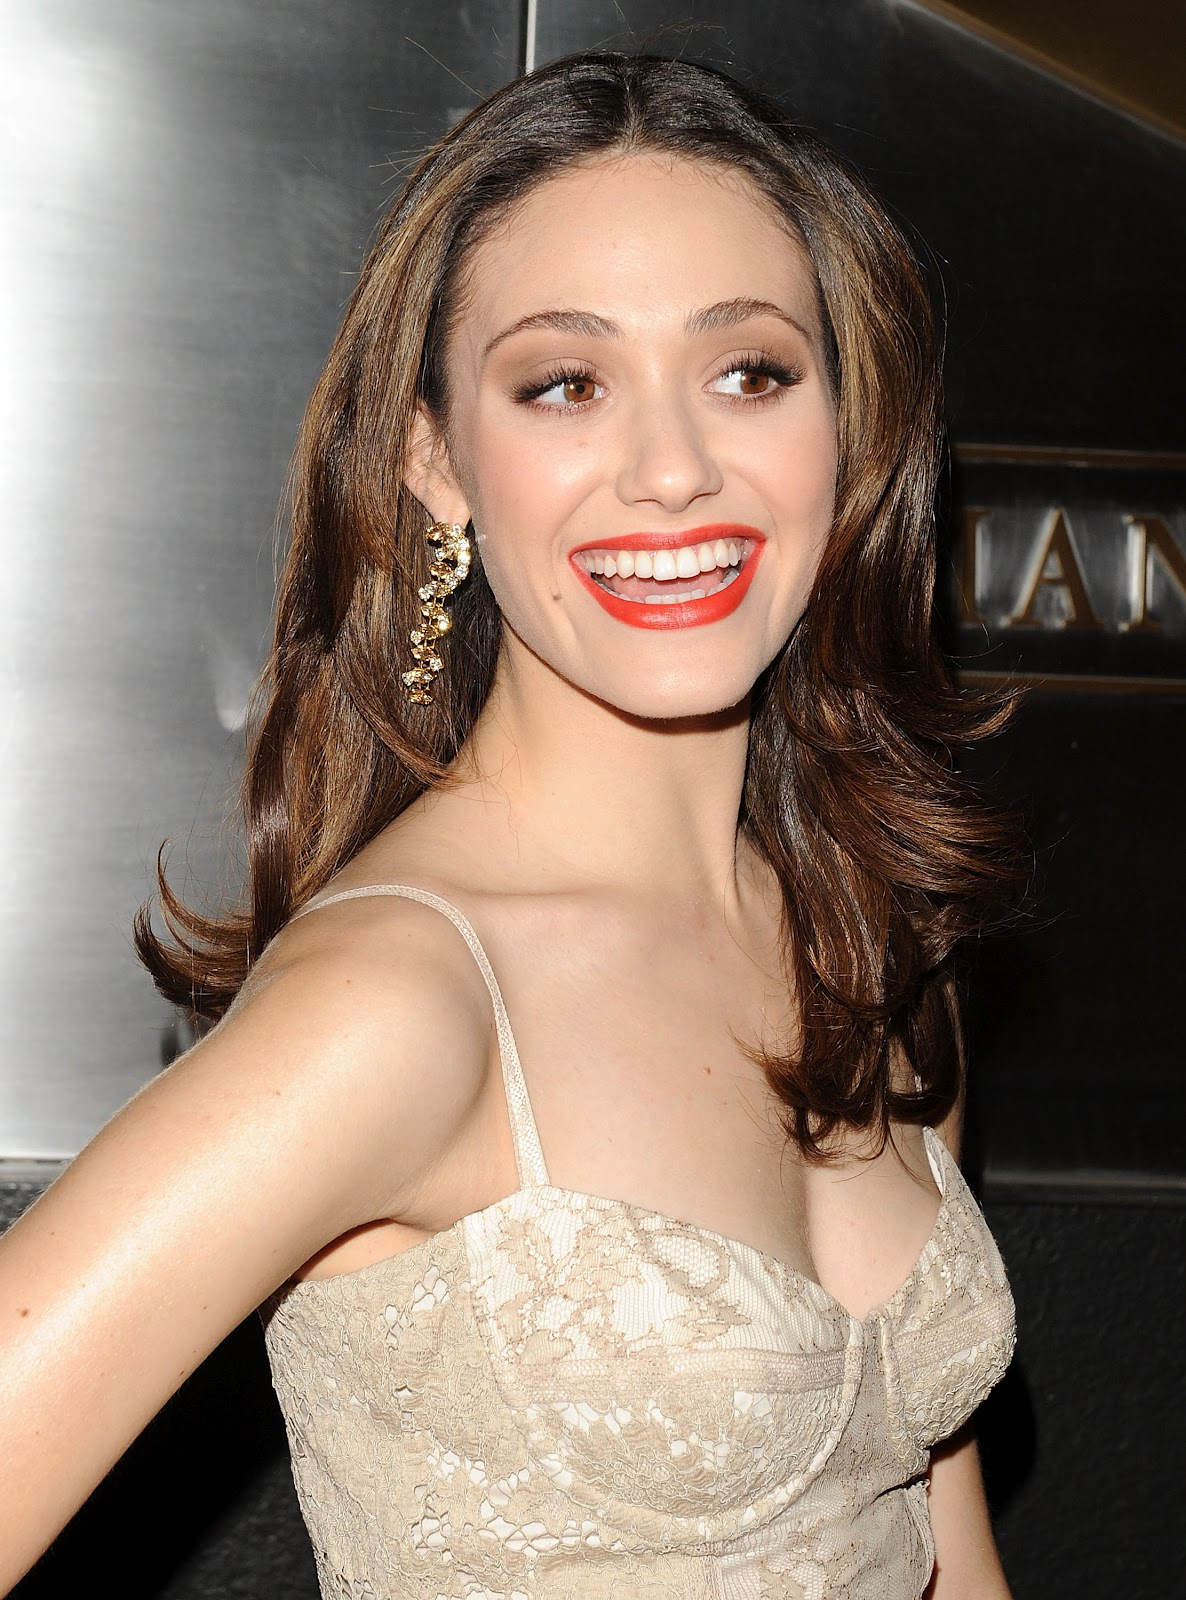 best woman pictures emmy rossum pictures